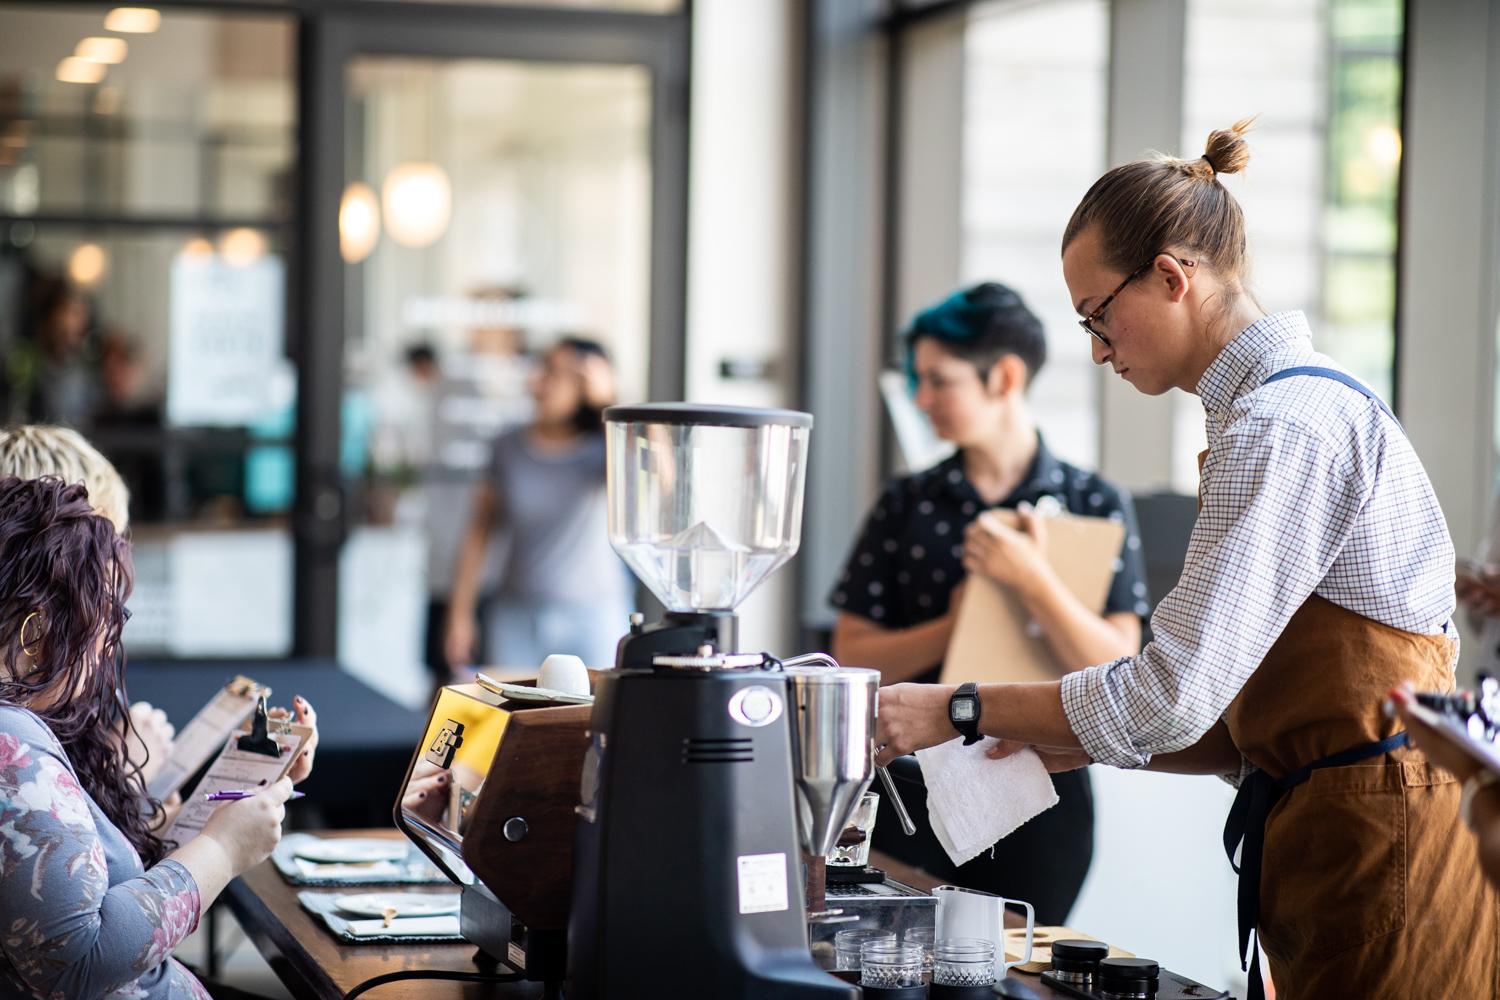 A scene from the Barista competition at the prelims at East Pole Coffee Co.